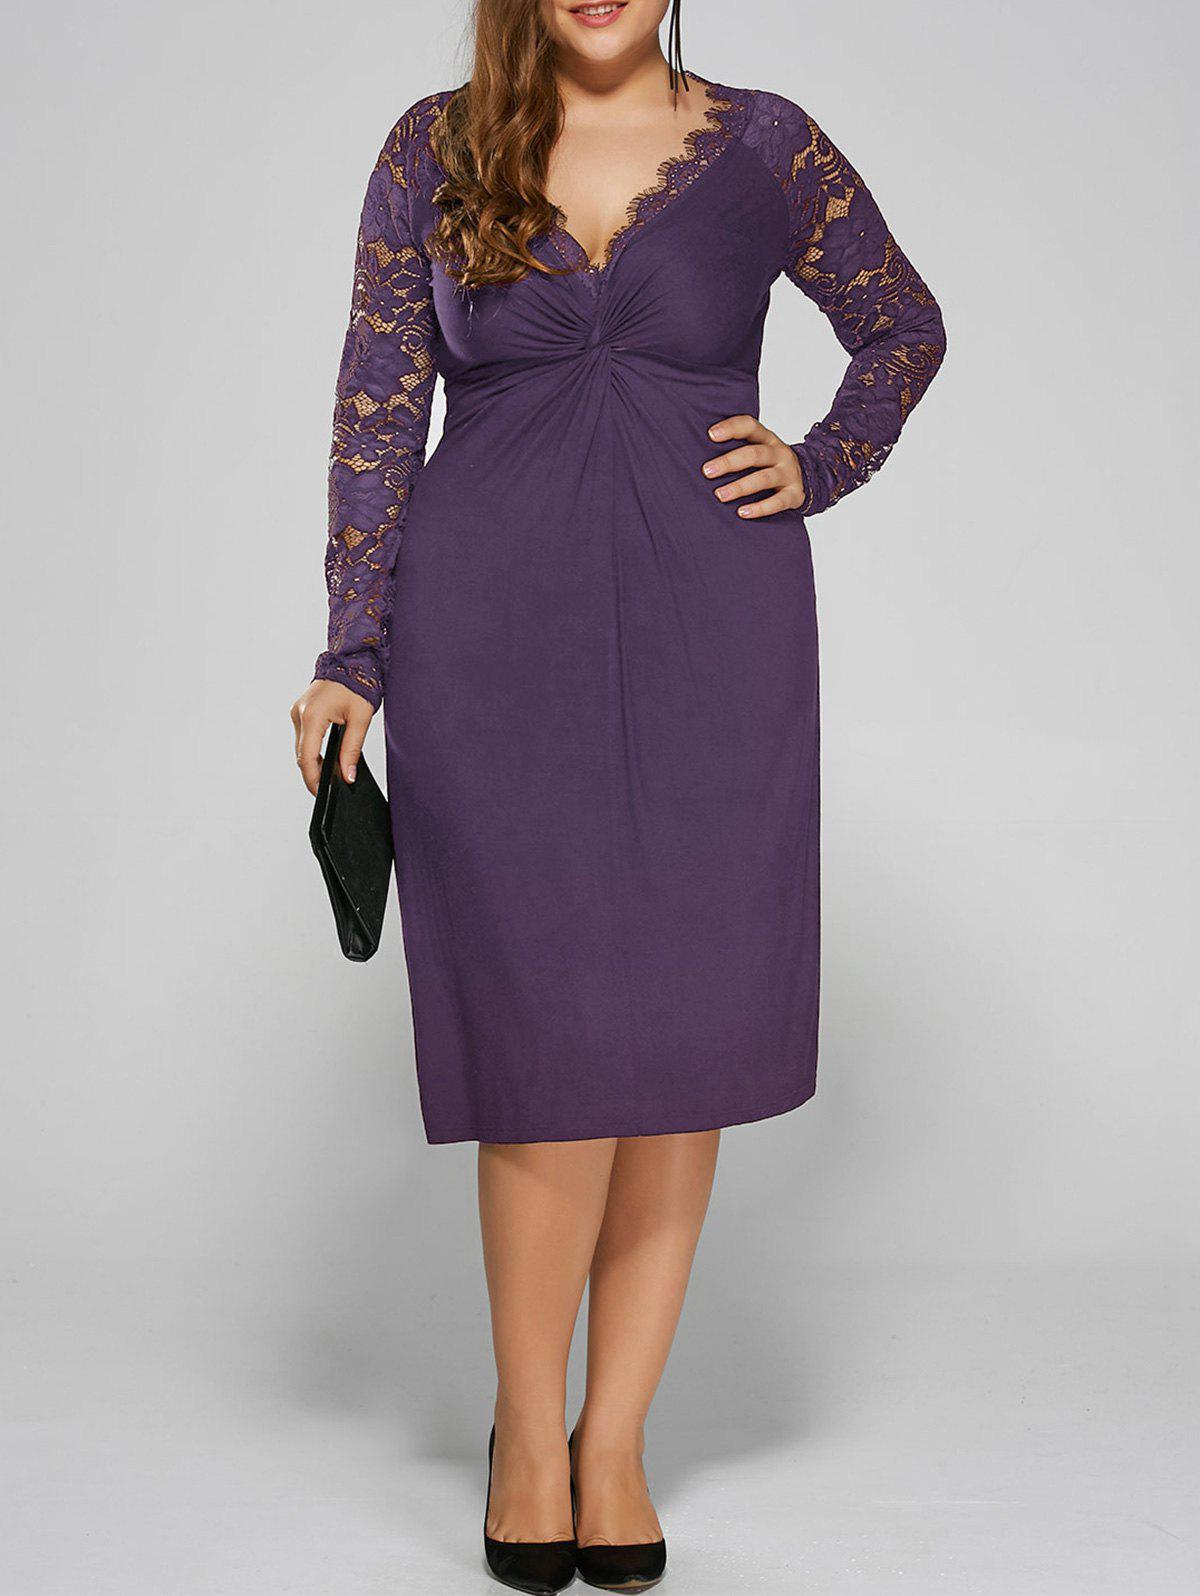 Plus Size Twist Front Lace Insert Fitted Dress - PURPLE 5XL